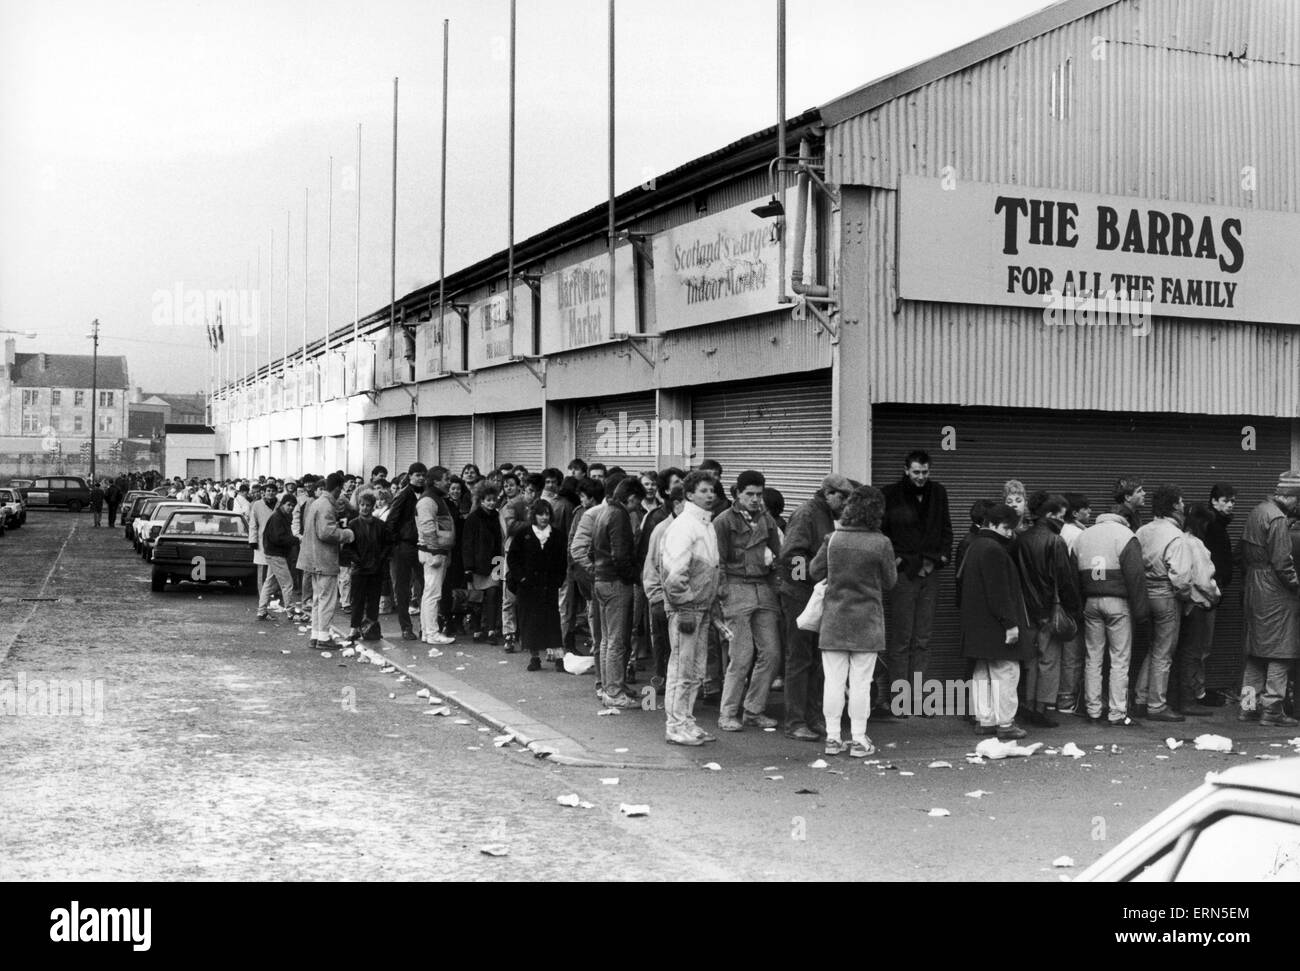 Fans queue for Simple Minds concert outside the Barrowland Ballroom, Glasgow, Scotland, November 1983. - Stock Image